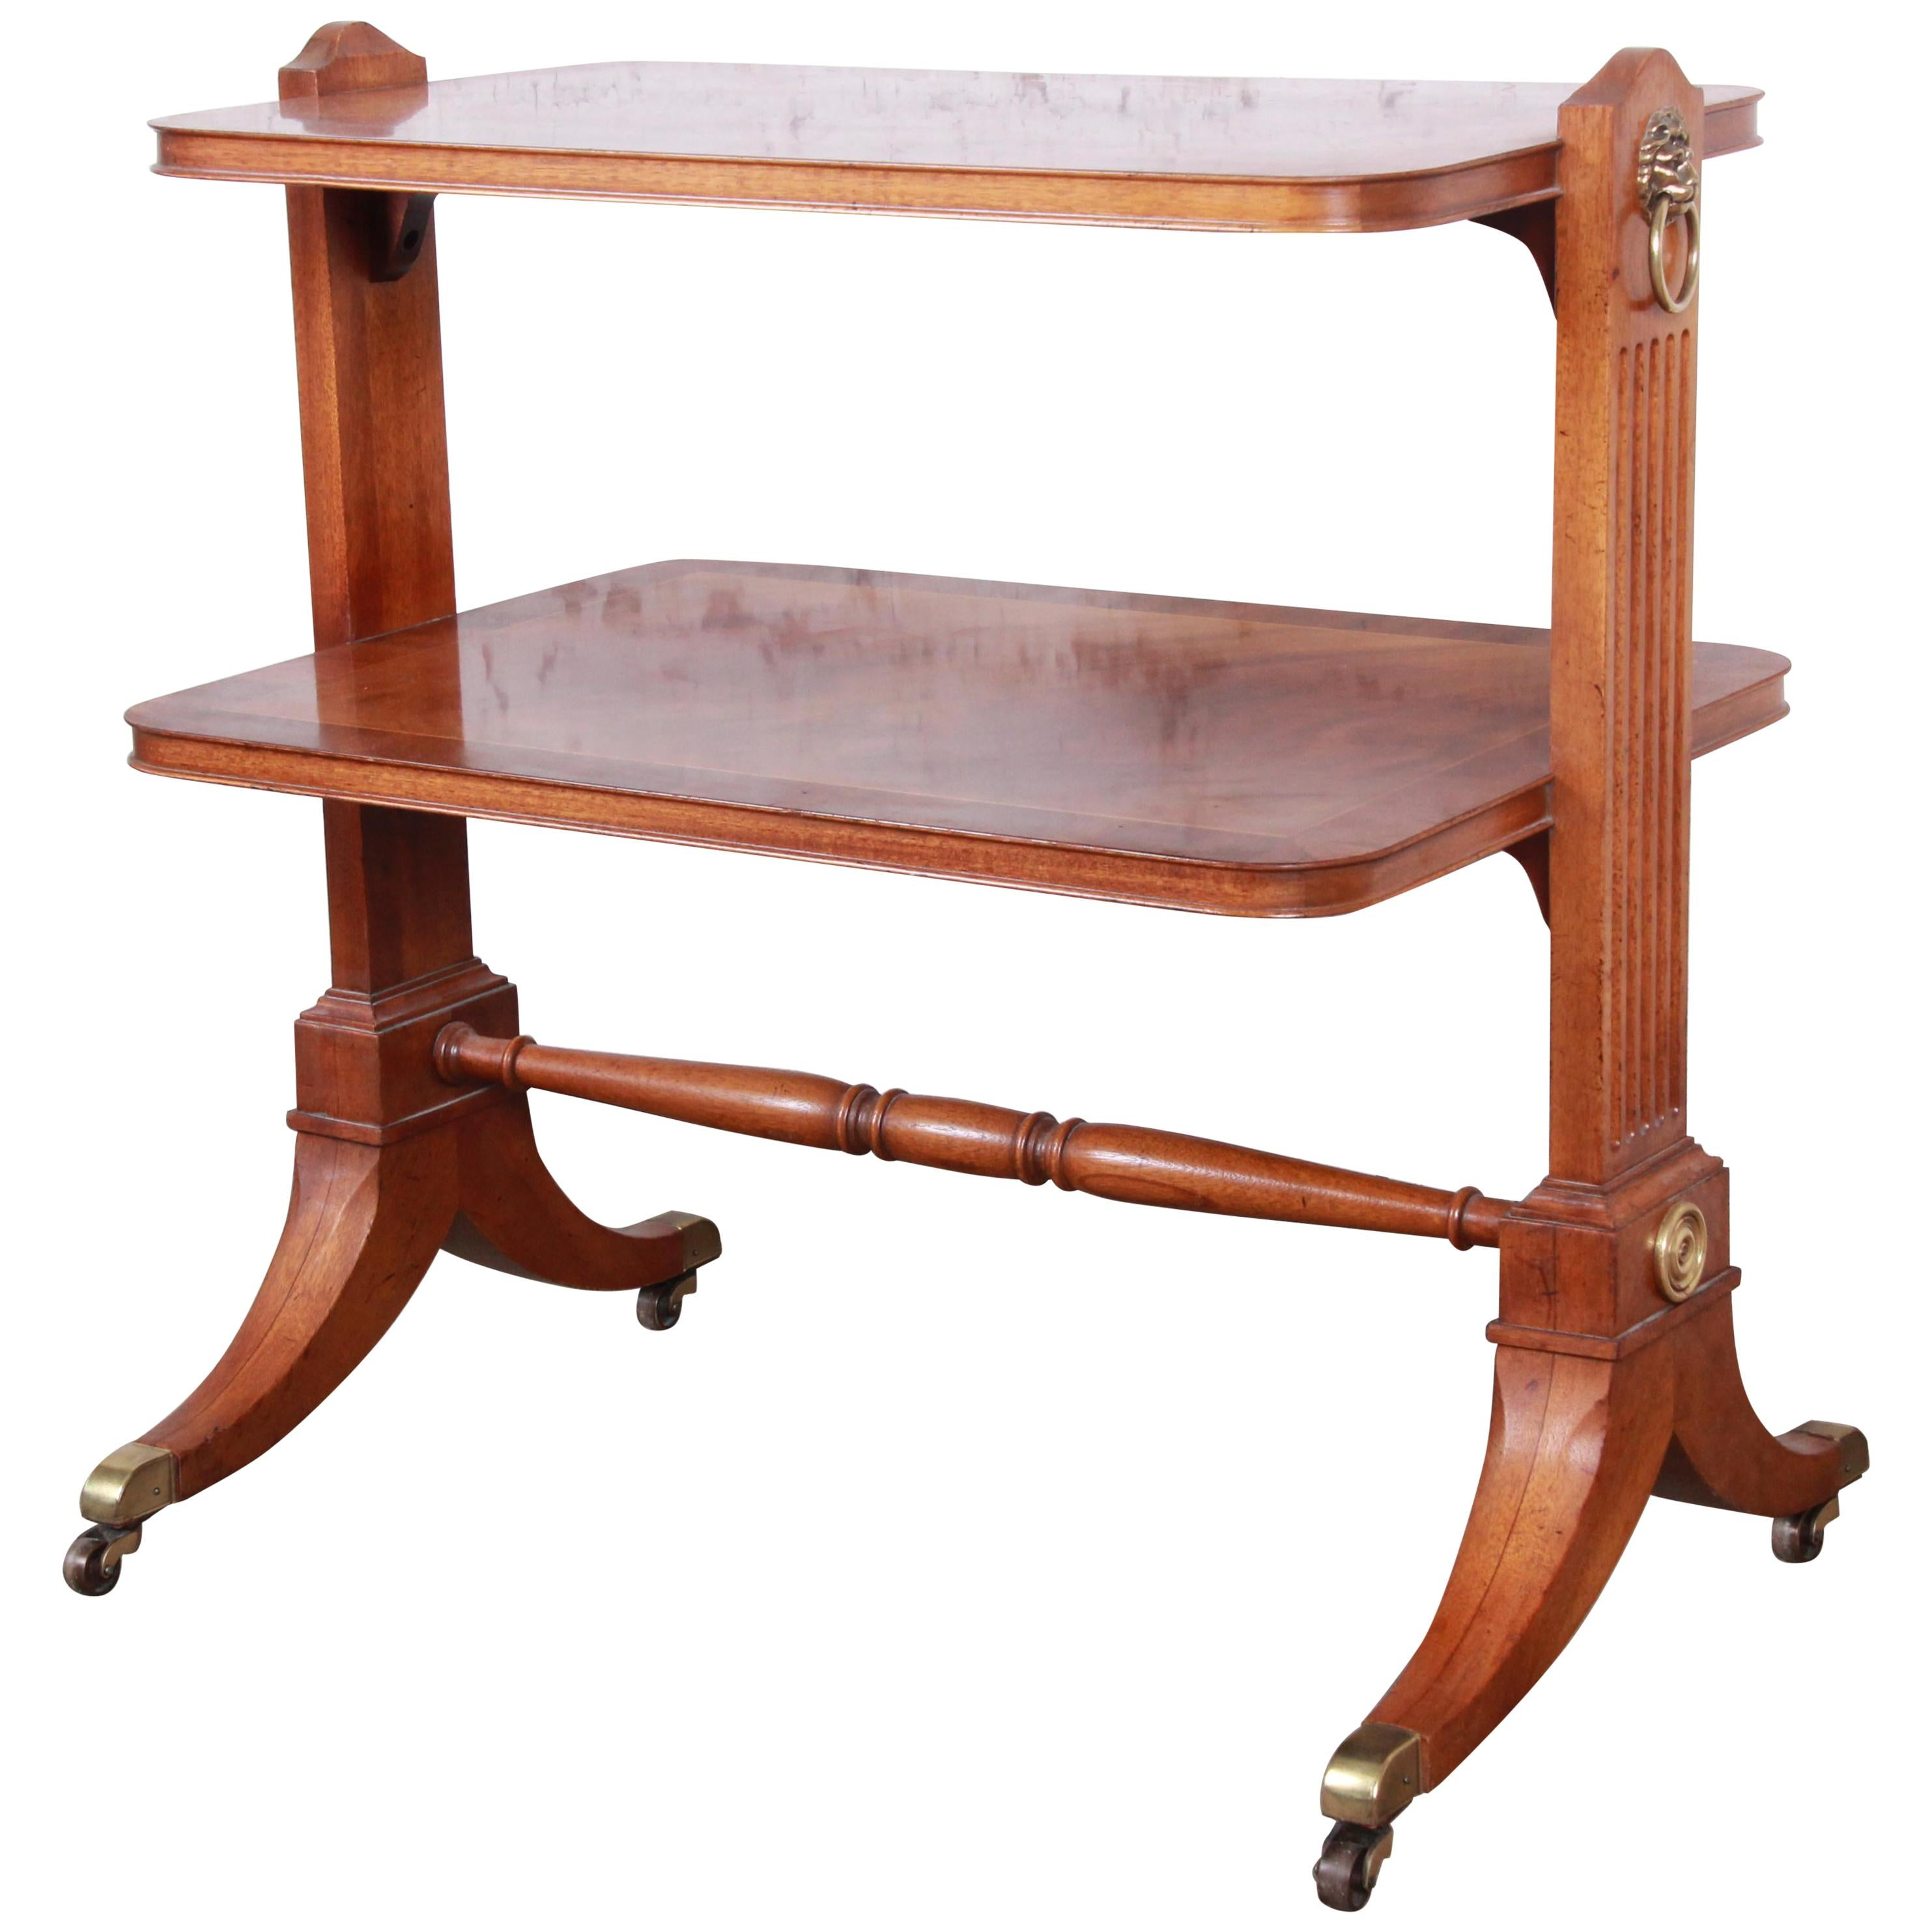 Baker Furniture Georgian Banded Mahogany Two-Tier Side Table